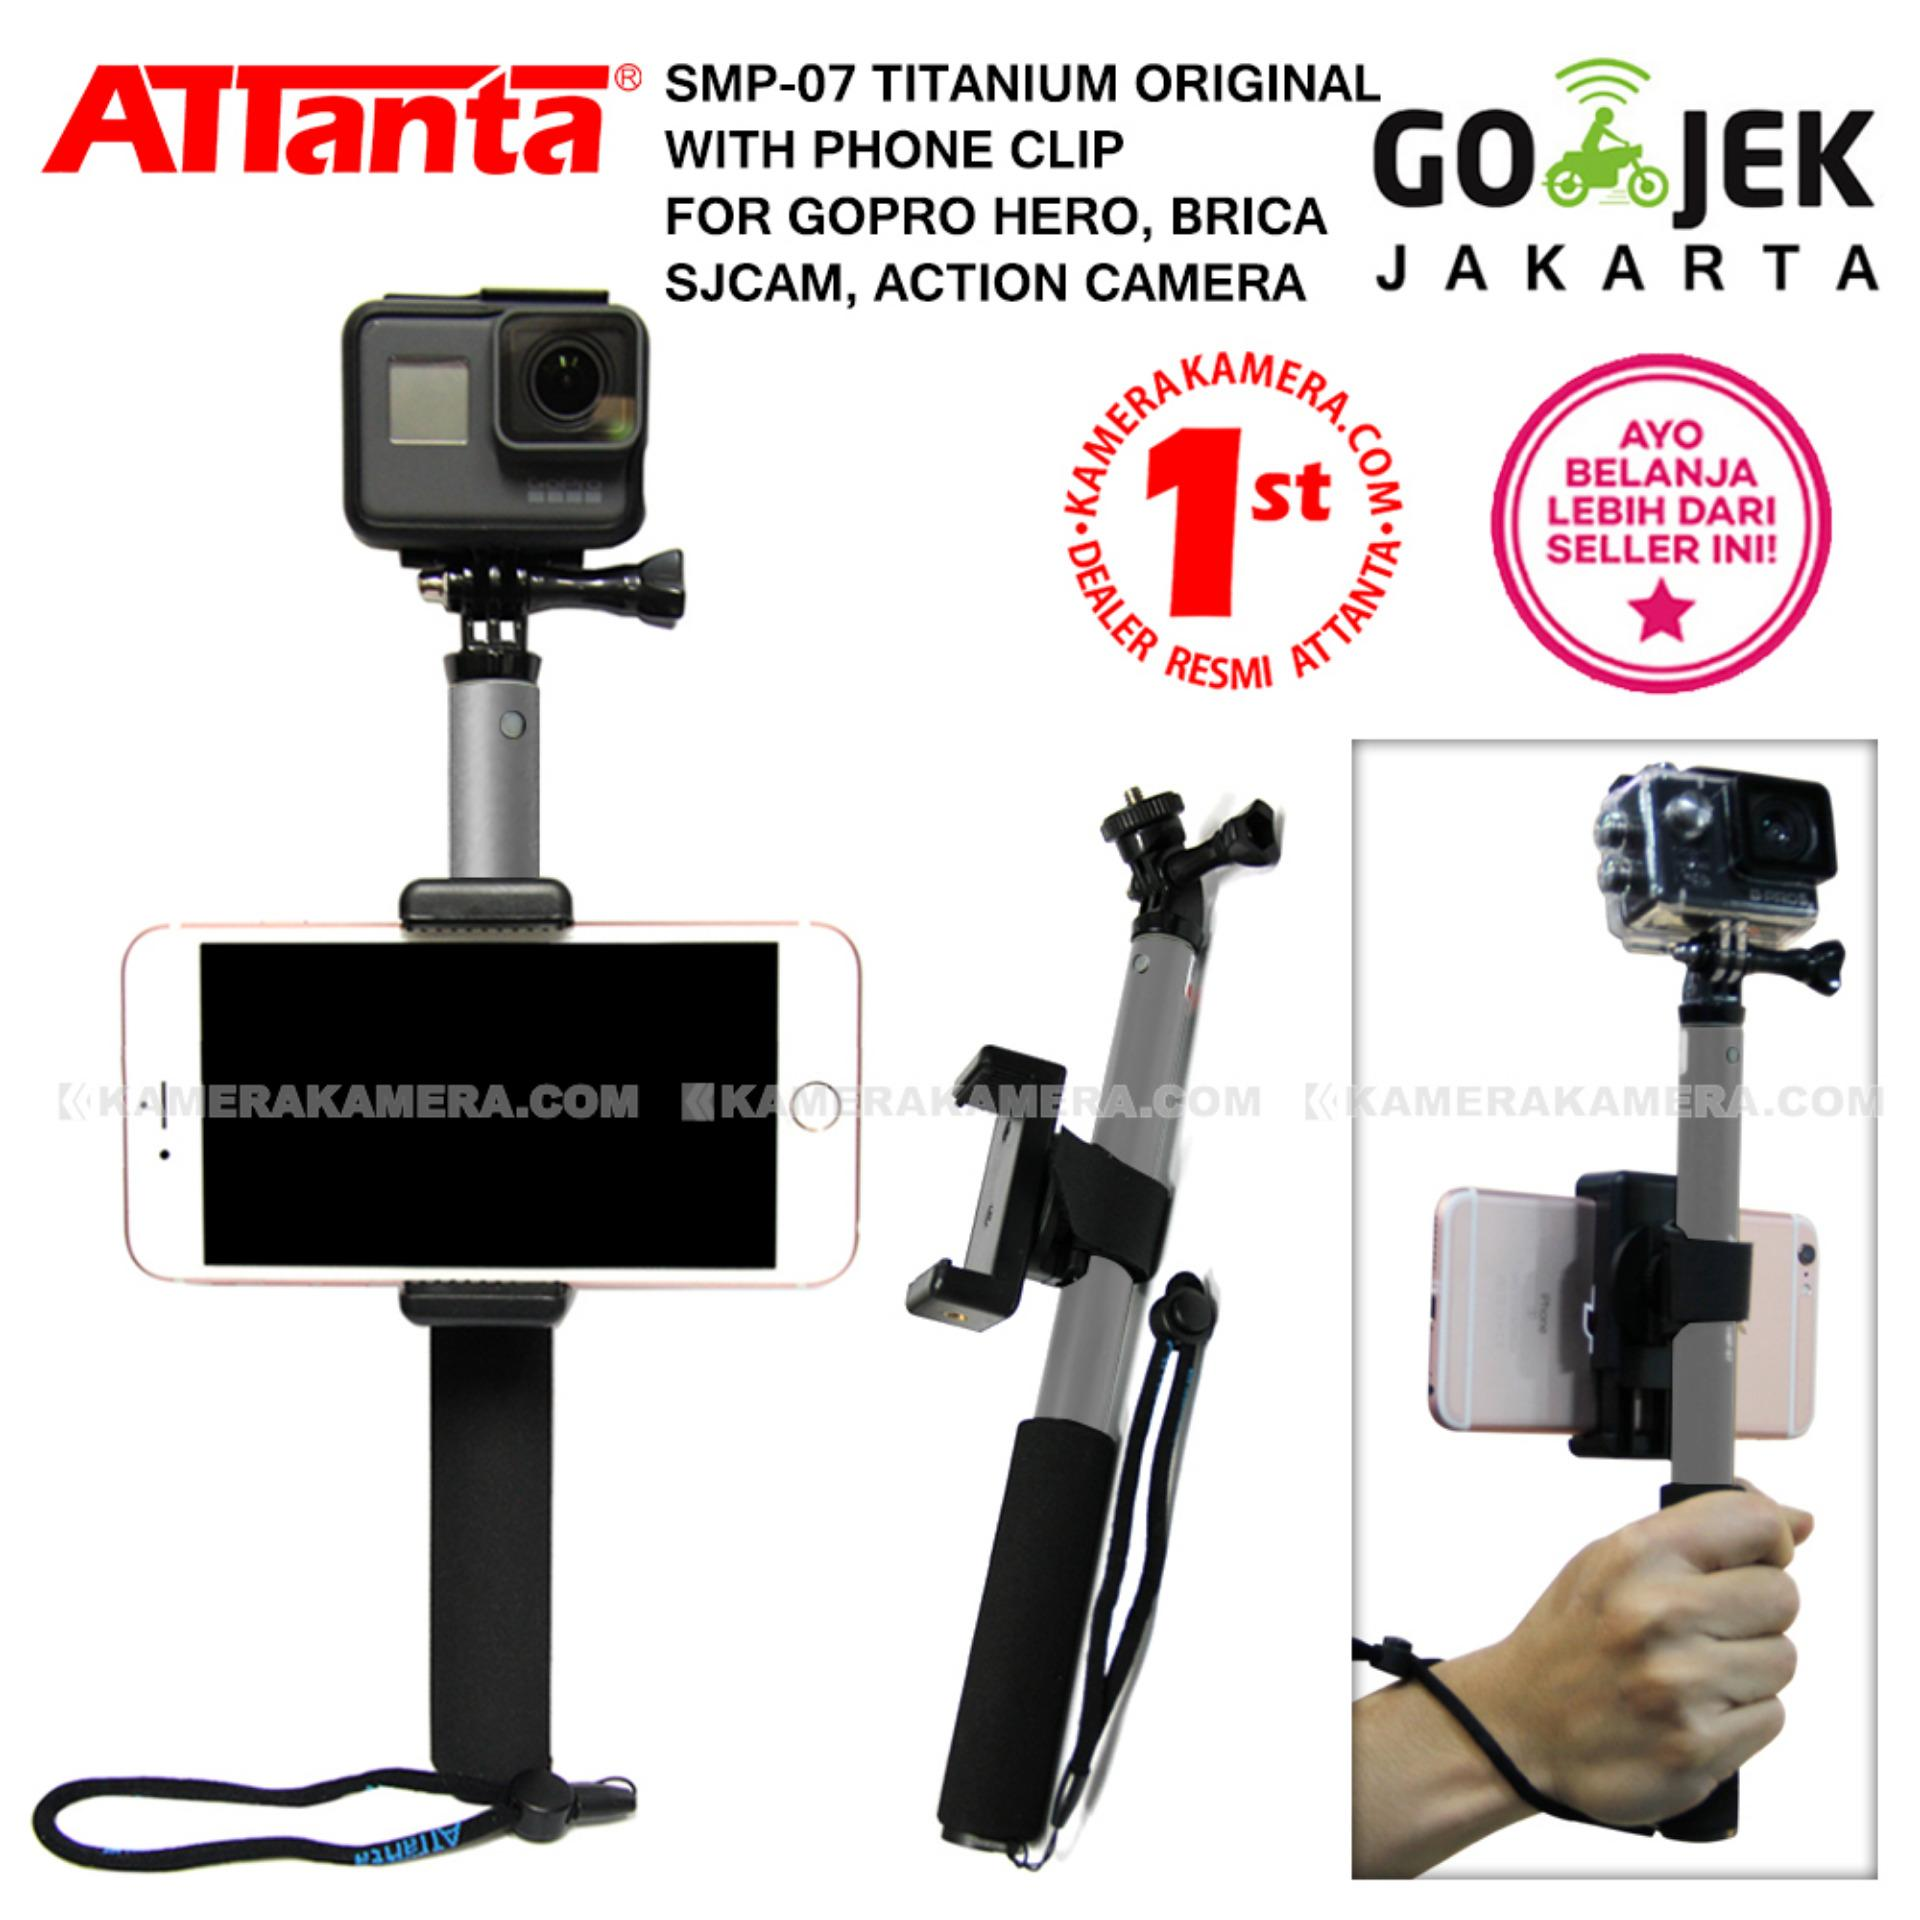 Harga Attanta Smp 07 Original Titanium Phone Clip For Gopro Action Camera Dslr Smartphone Camera Pocket Mirrorless New